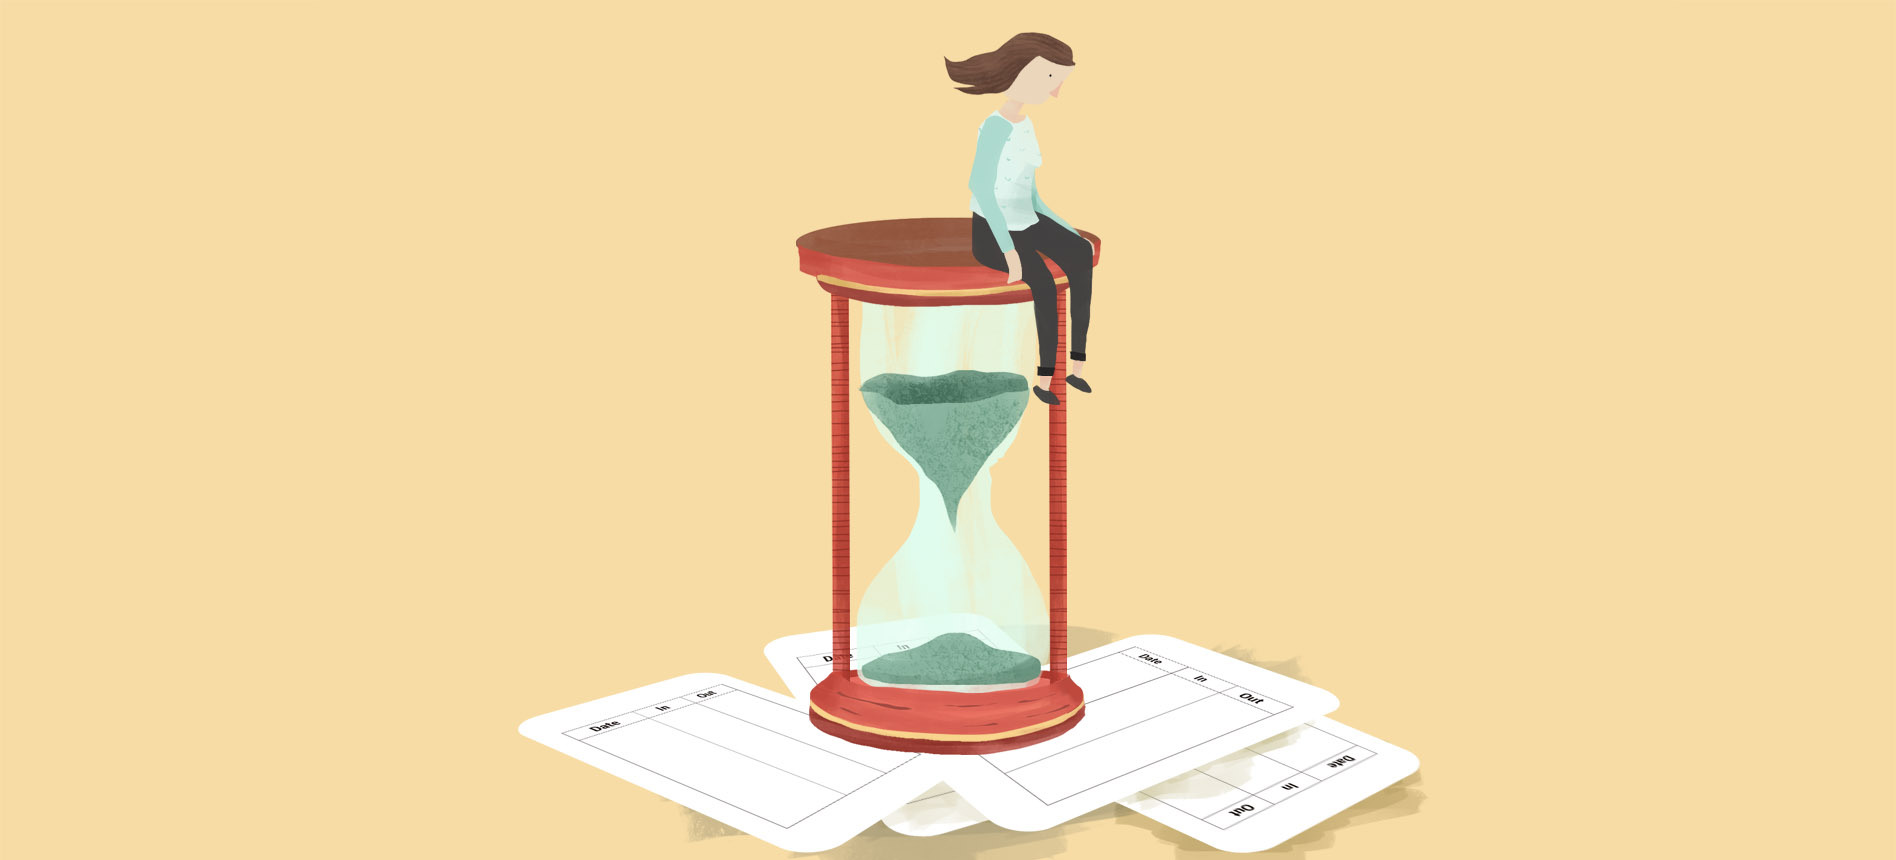 An illustration of a woman sitting on an hourglass